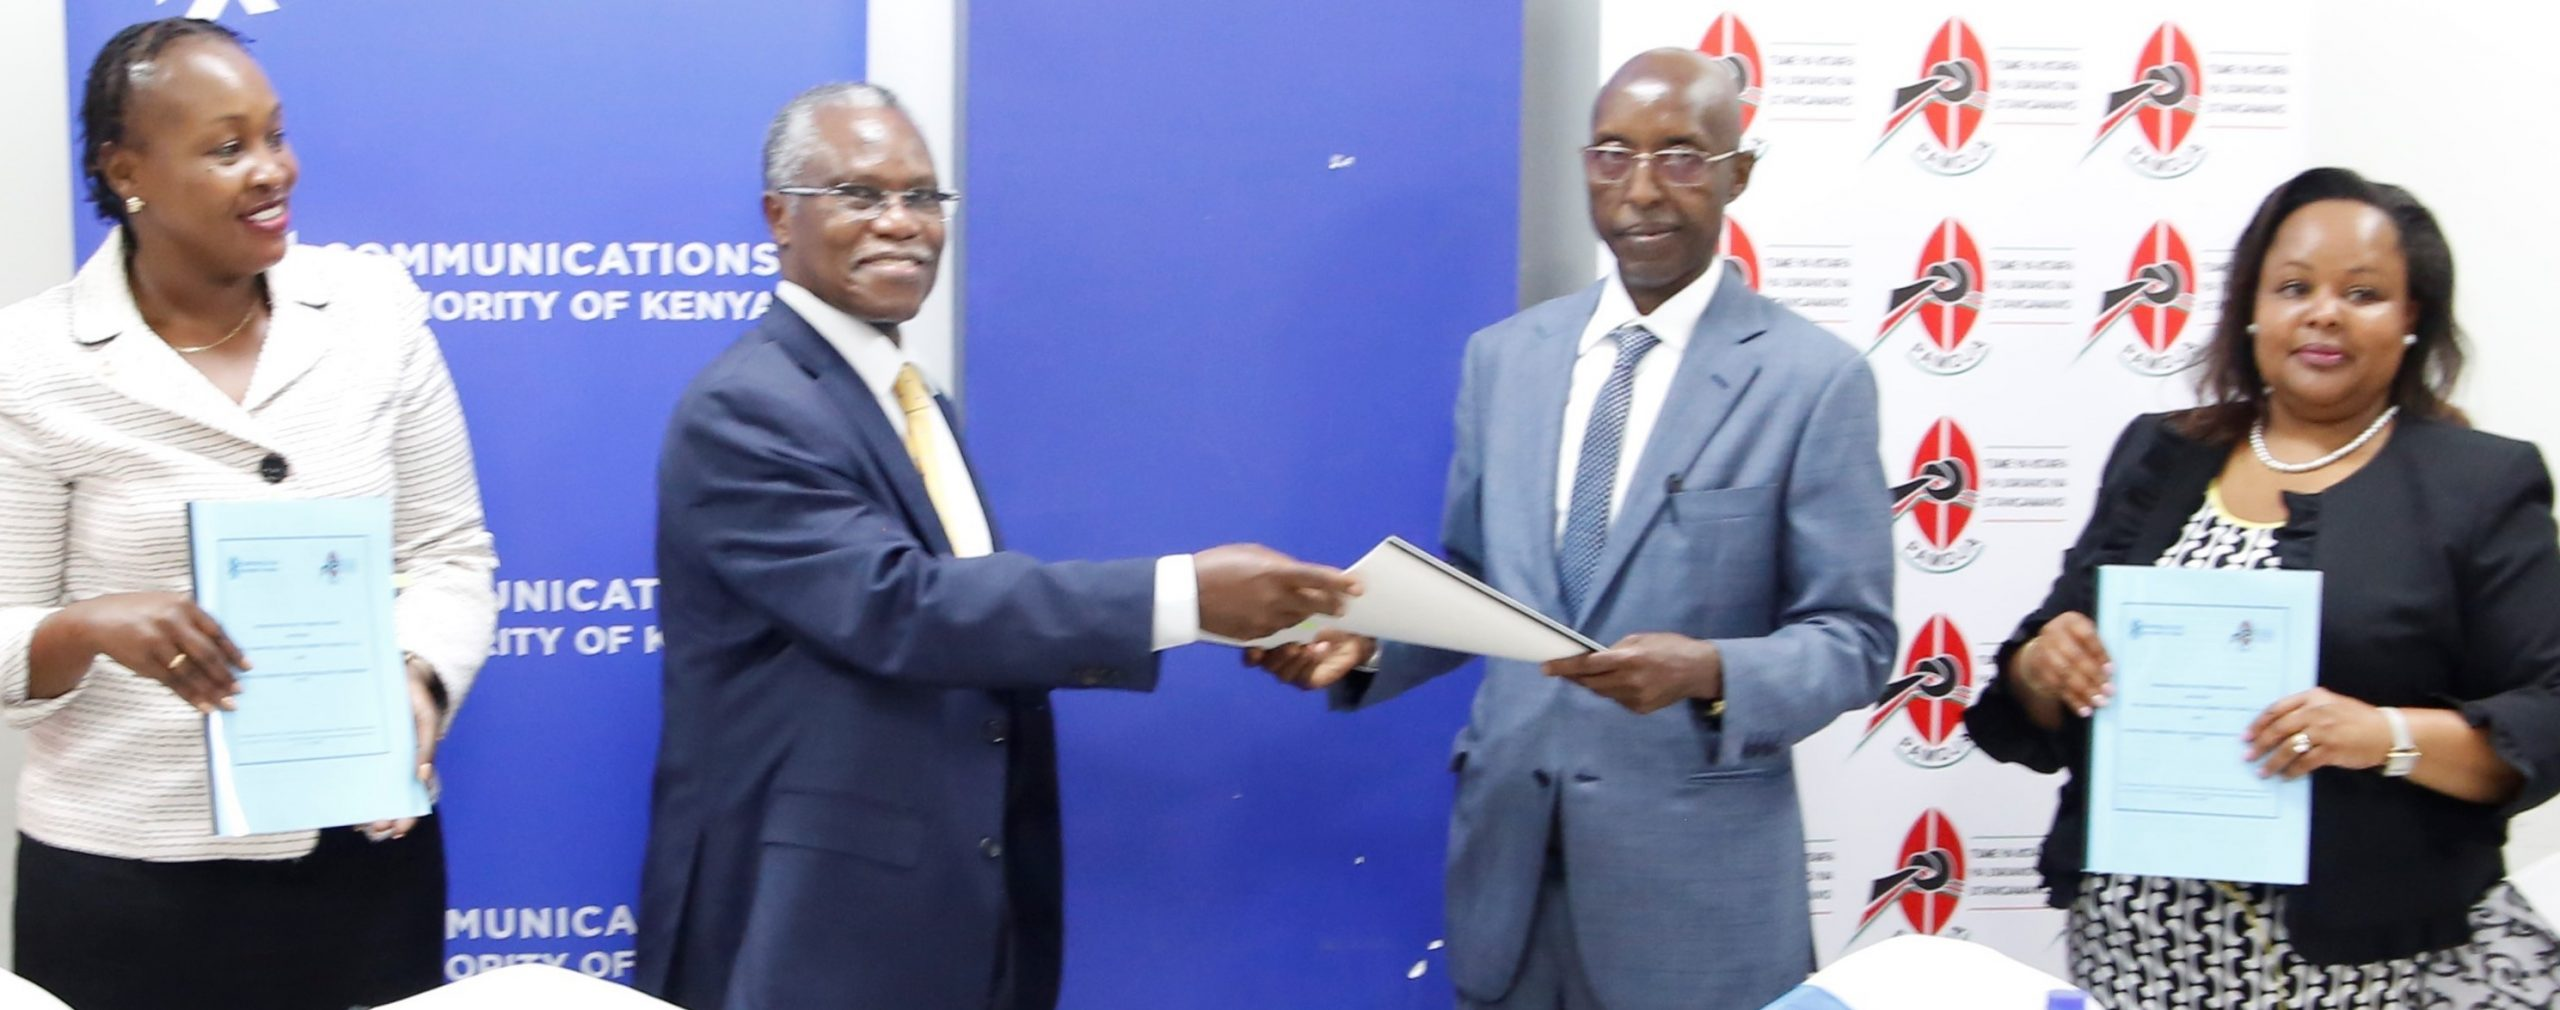 Authority and National Cohesion and Integration Commission Sign Pact to Curb Hate Speech